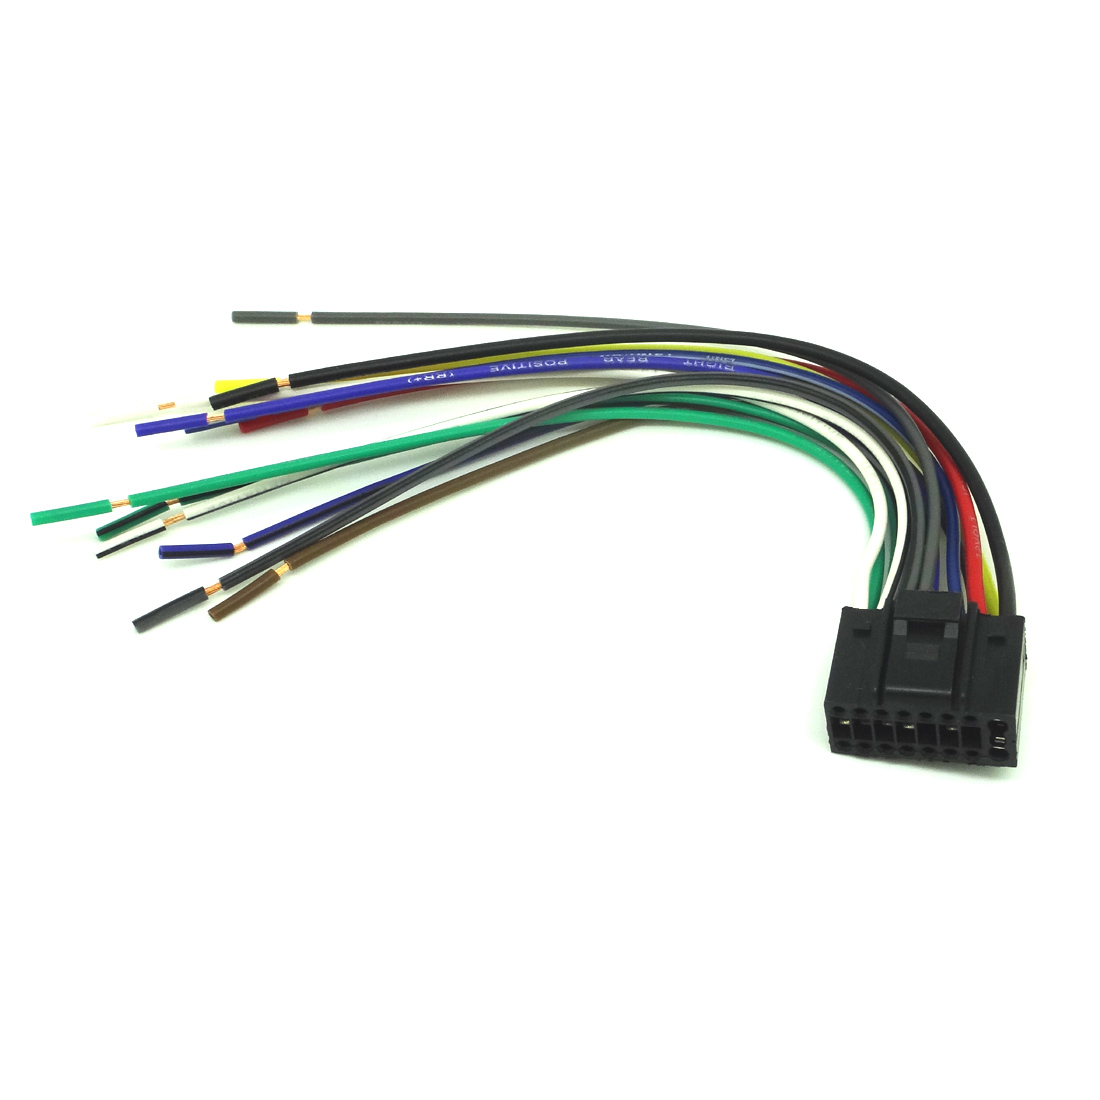 kenwood ddx770 wiring harness 29 wiring diagram images wiring diagrams for player 16 pin radio car audio stereo wire harness for kenwood kdc bt855u kdc bt945u kdc